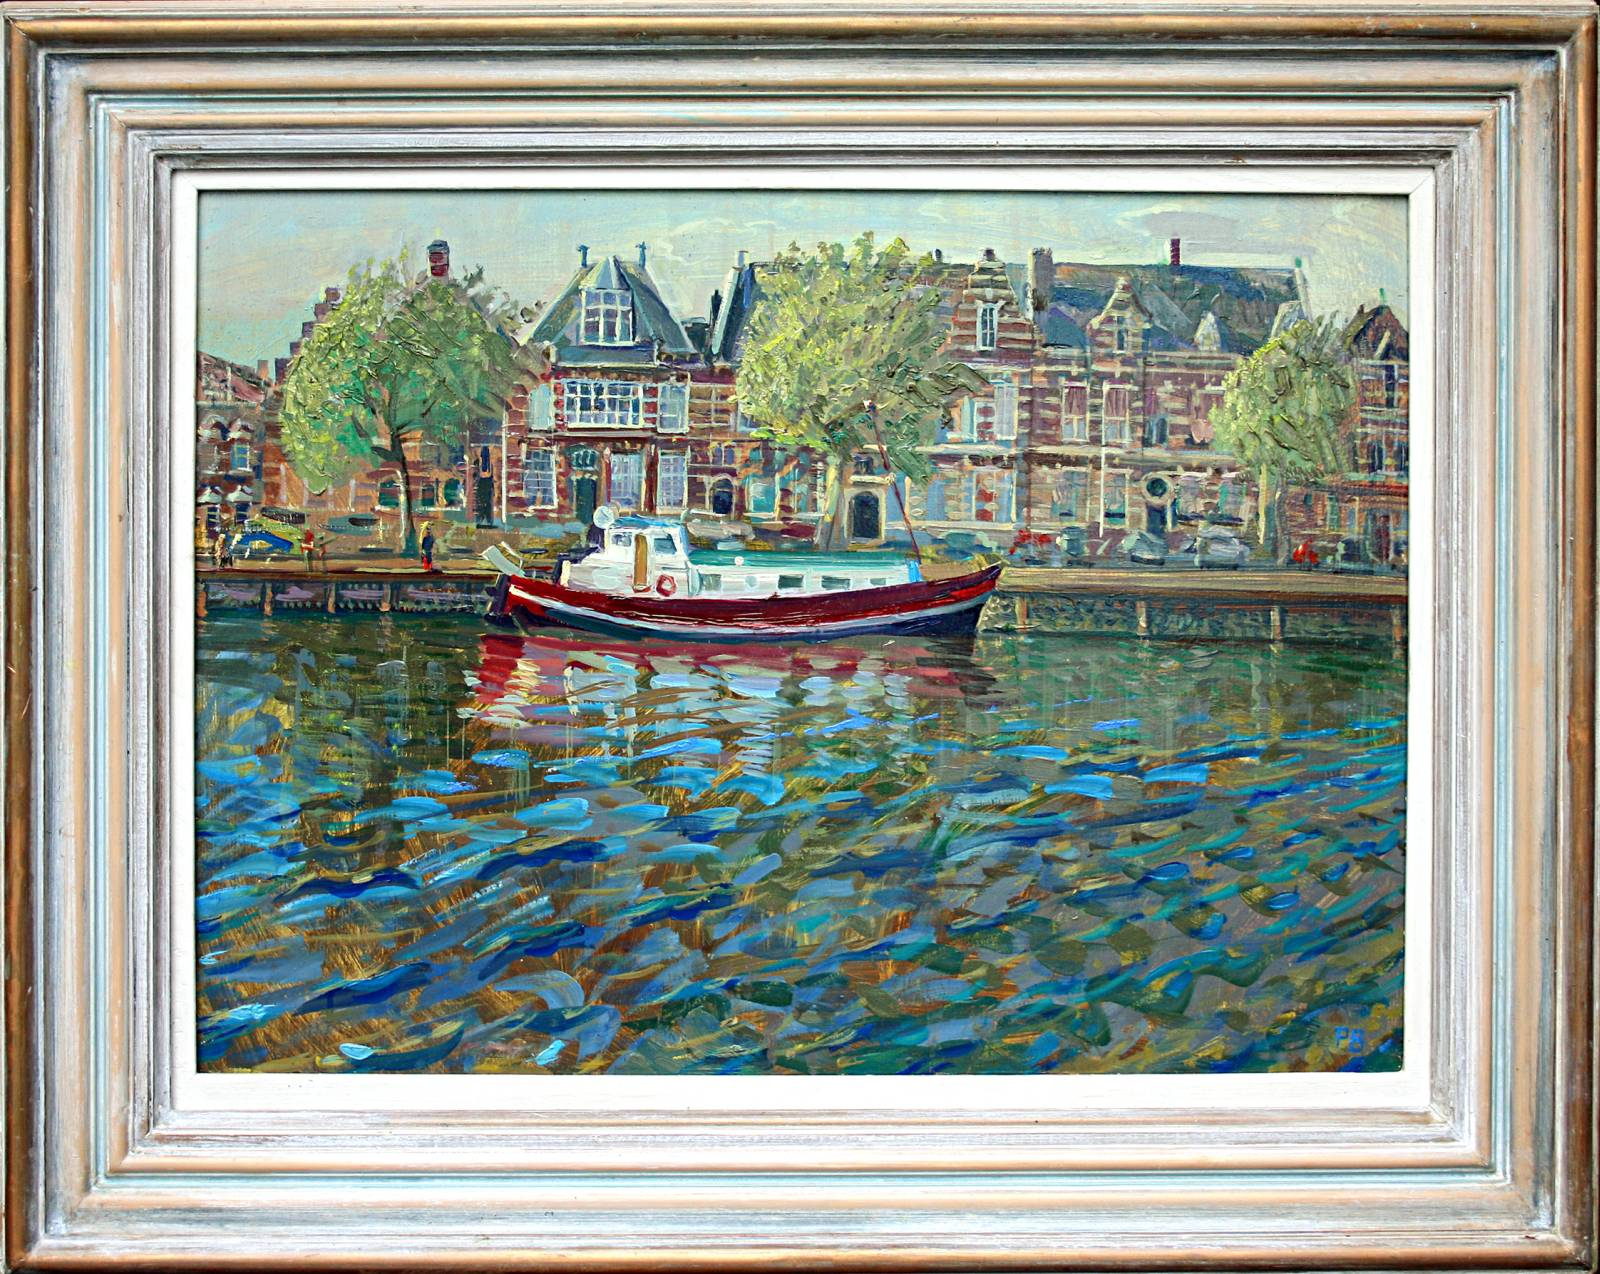 'BARGE AT MIDDLEBURG, HOLLAND'